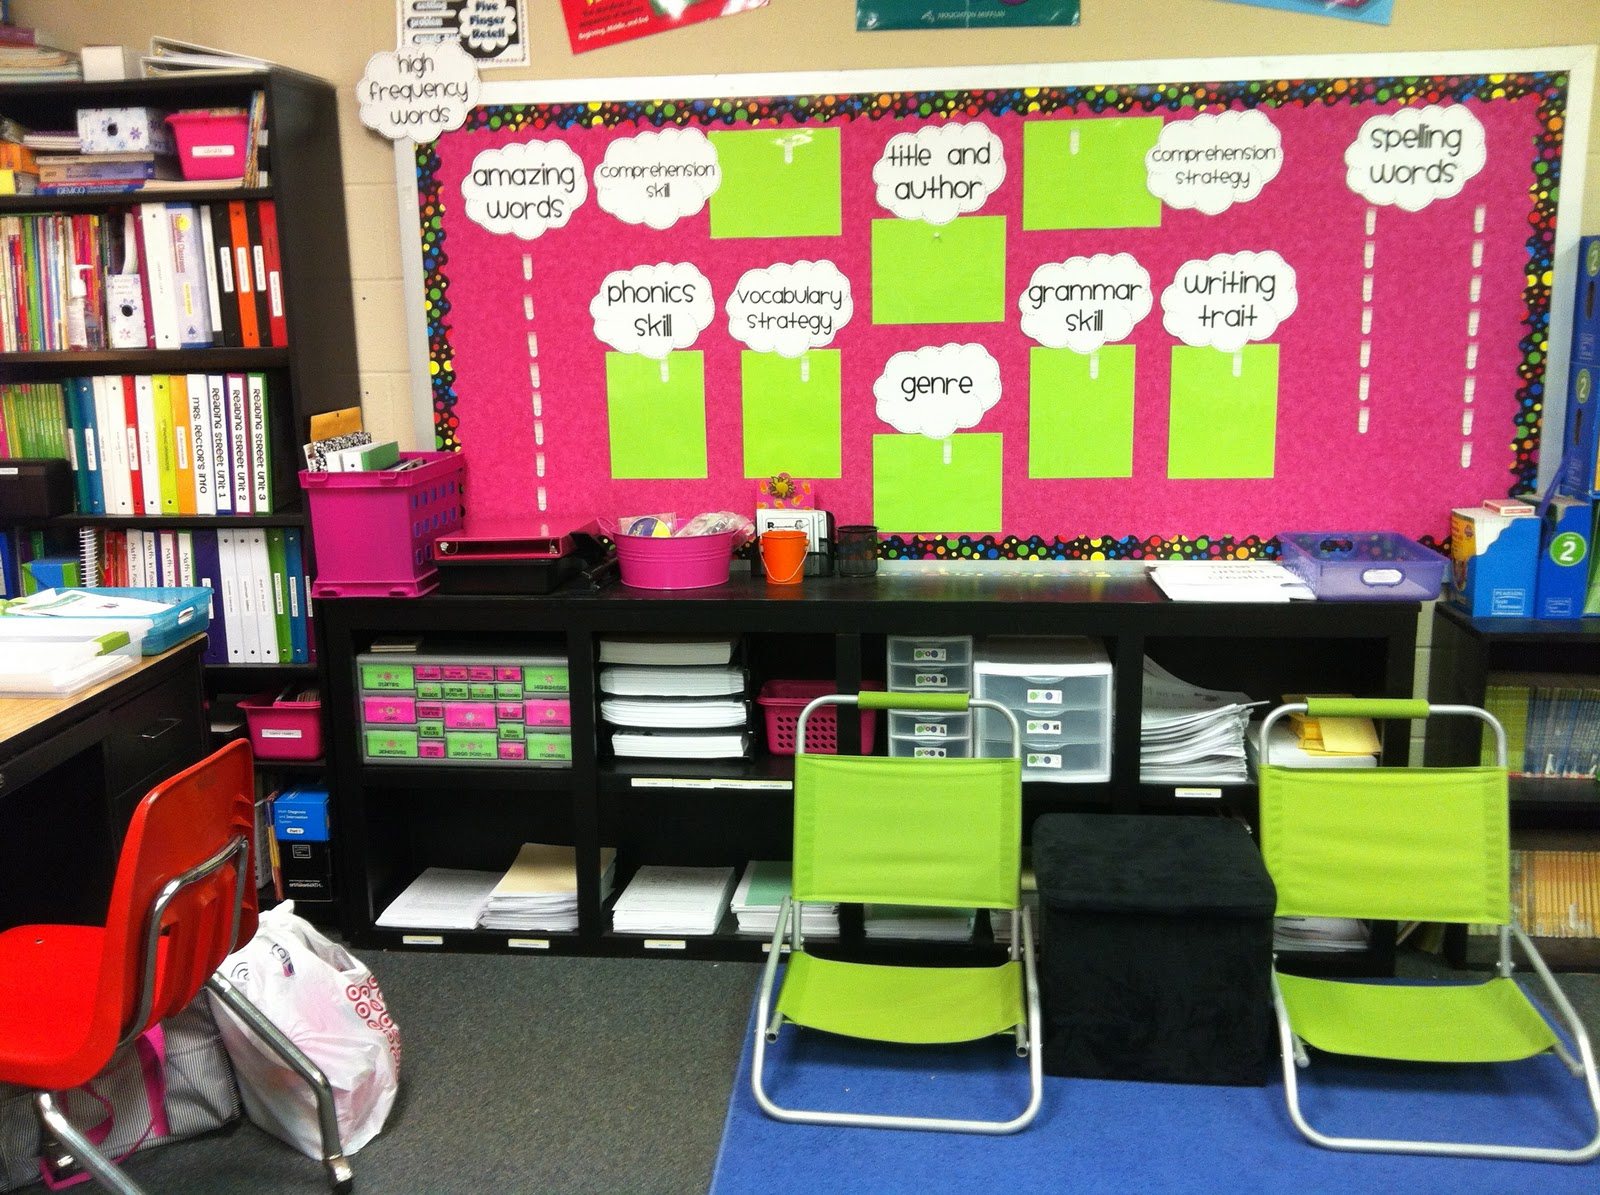 Math Focus Wall http://2ndgradestuff.blogspot.com/2012/01/clutter-free-classroom-project-linky.html